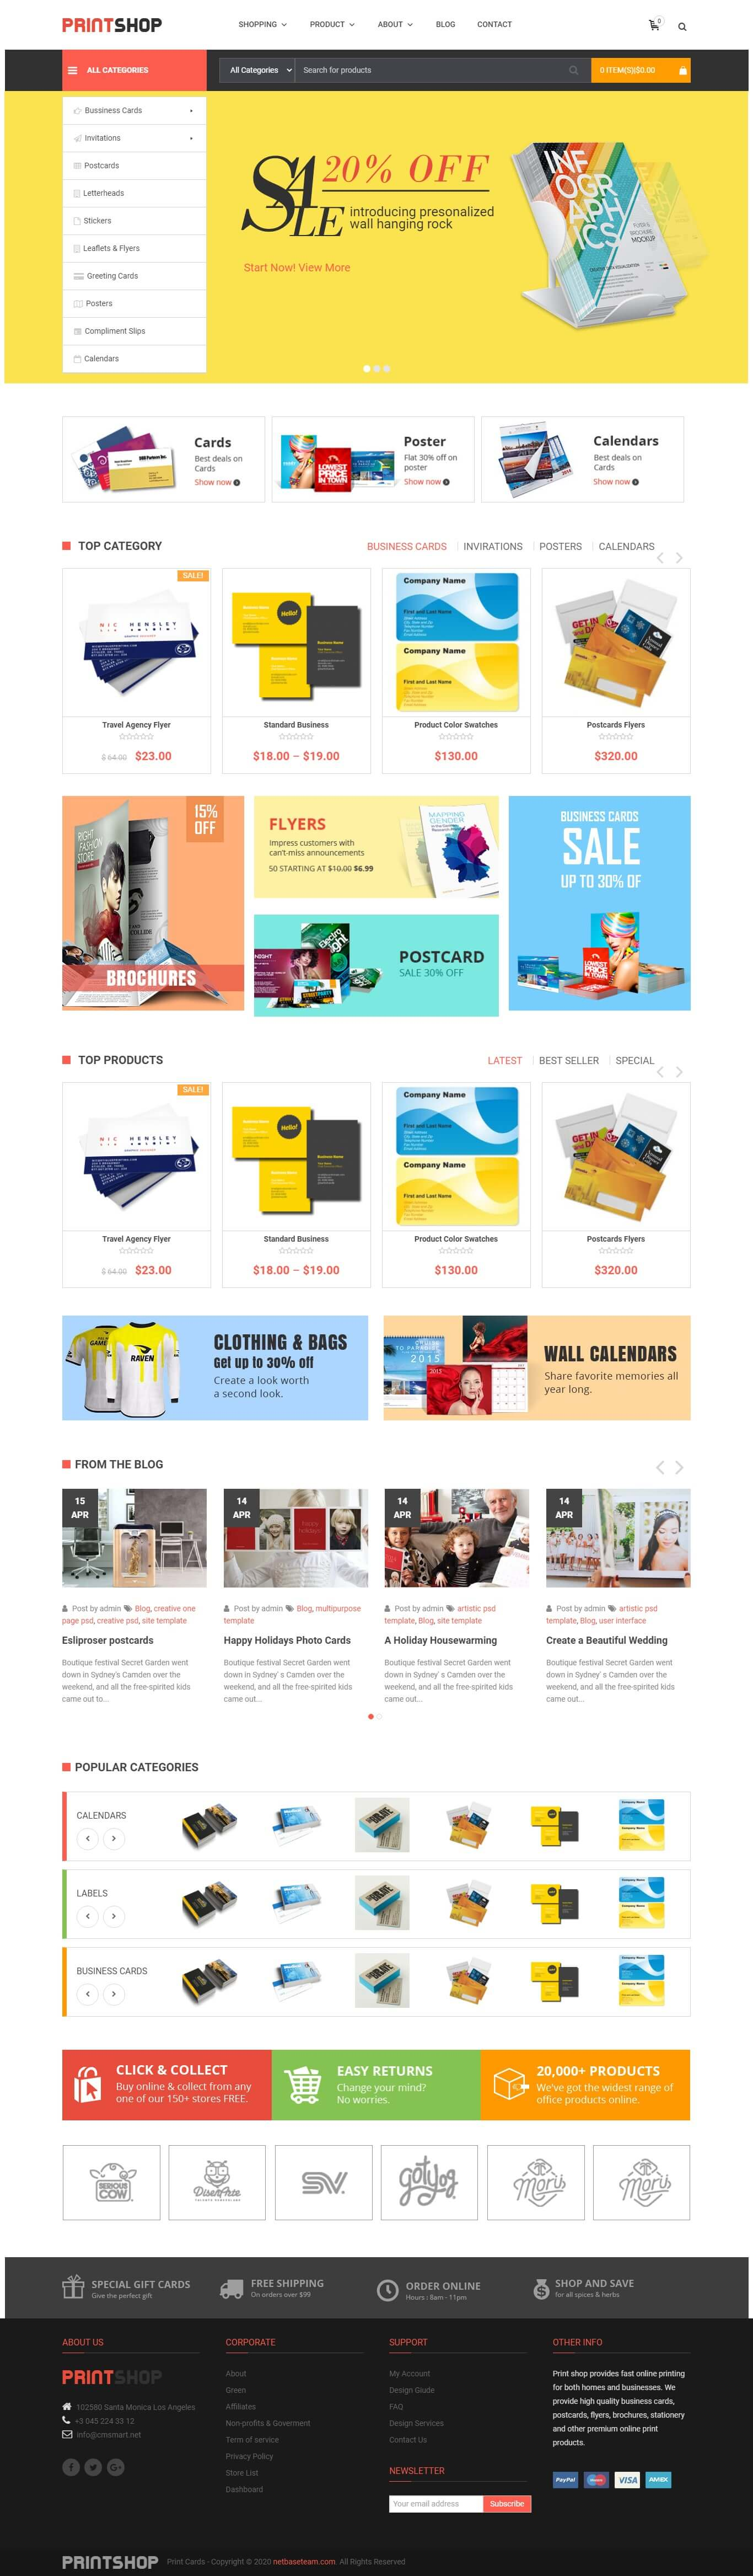 HOME PAGE 6